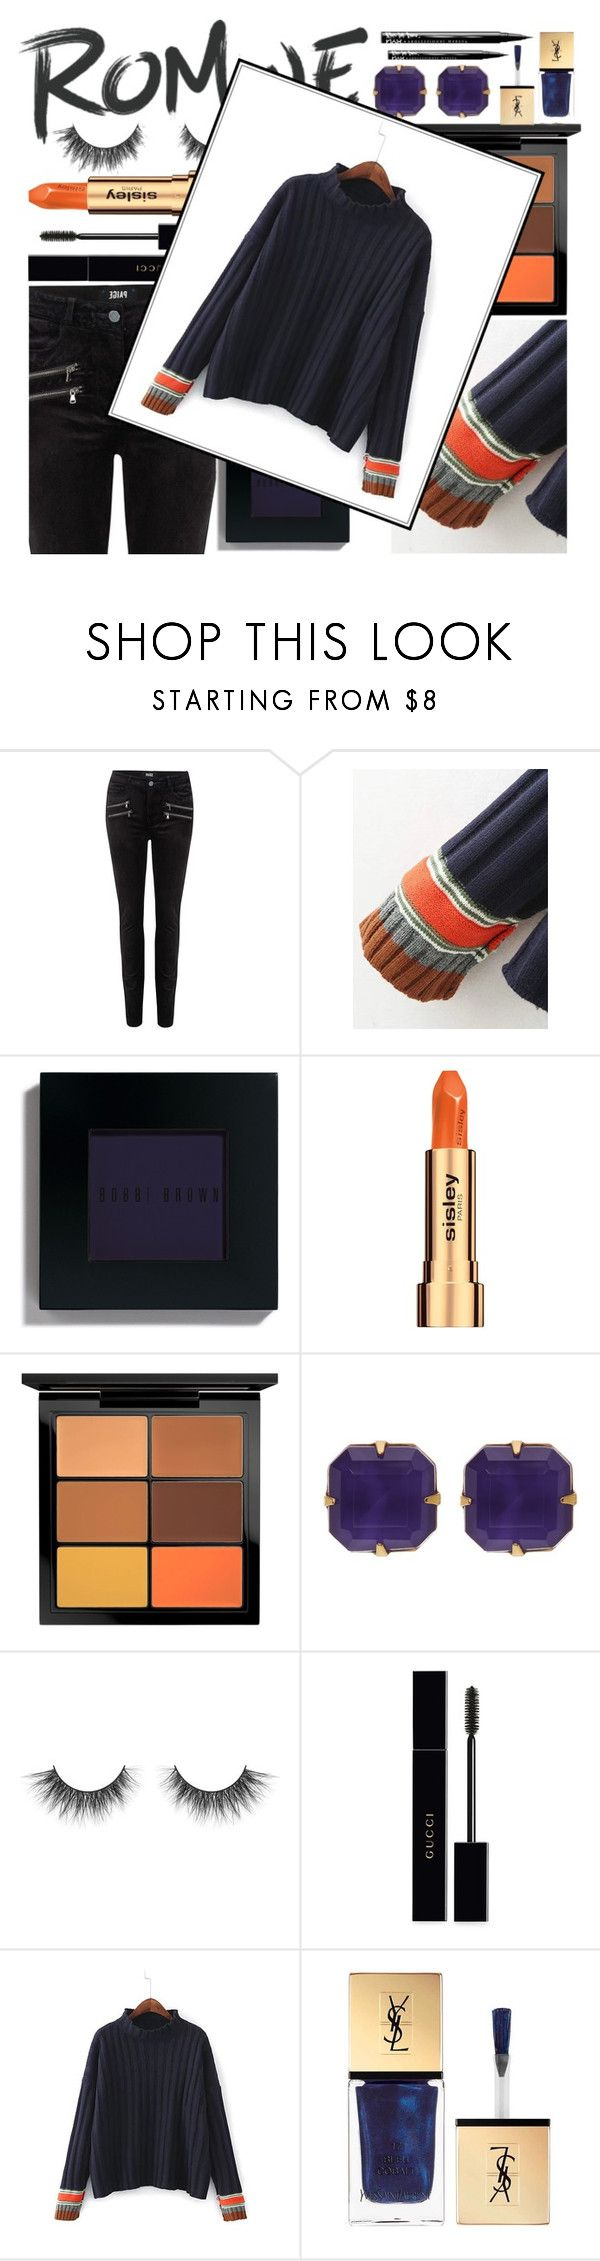 """ROMWE"" by hopefortomorrow ❤ liked on Polyvore featuring Paige Denim, Bobbi Brown Cosmetics, Sisley, MAC Cosmetics, Loren Hope, Gucci, Yves Saint Laurent and NYX"